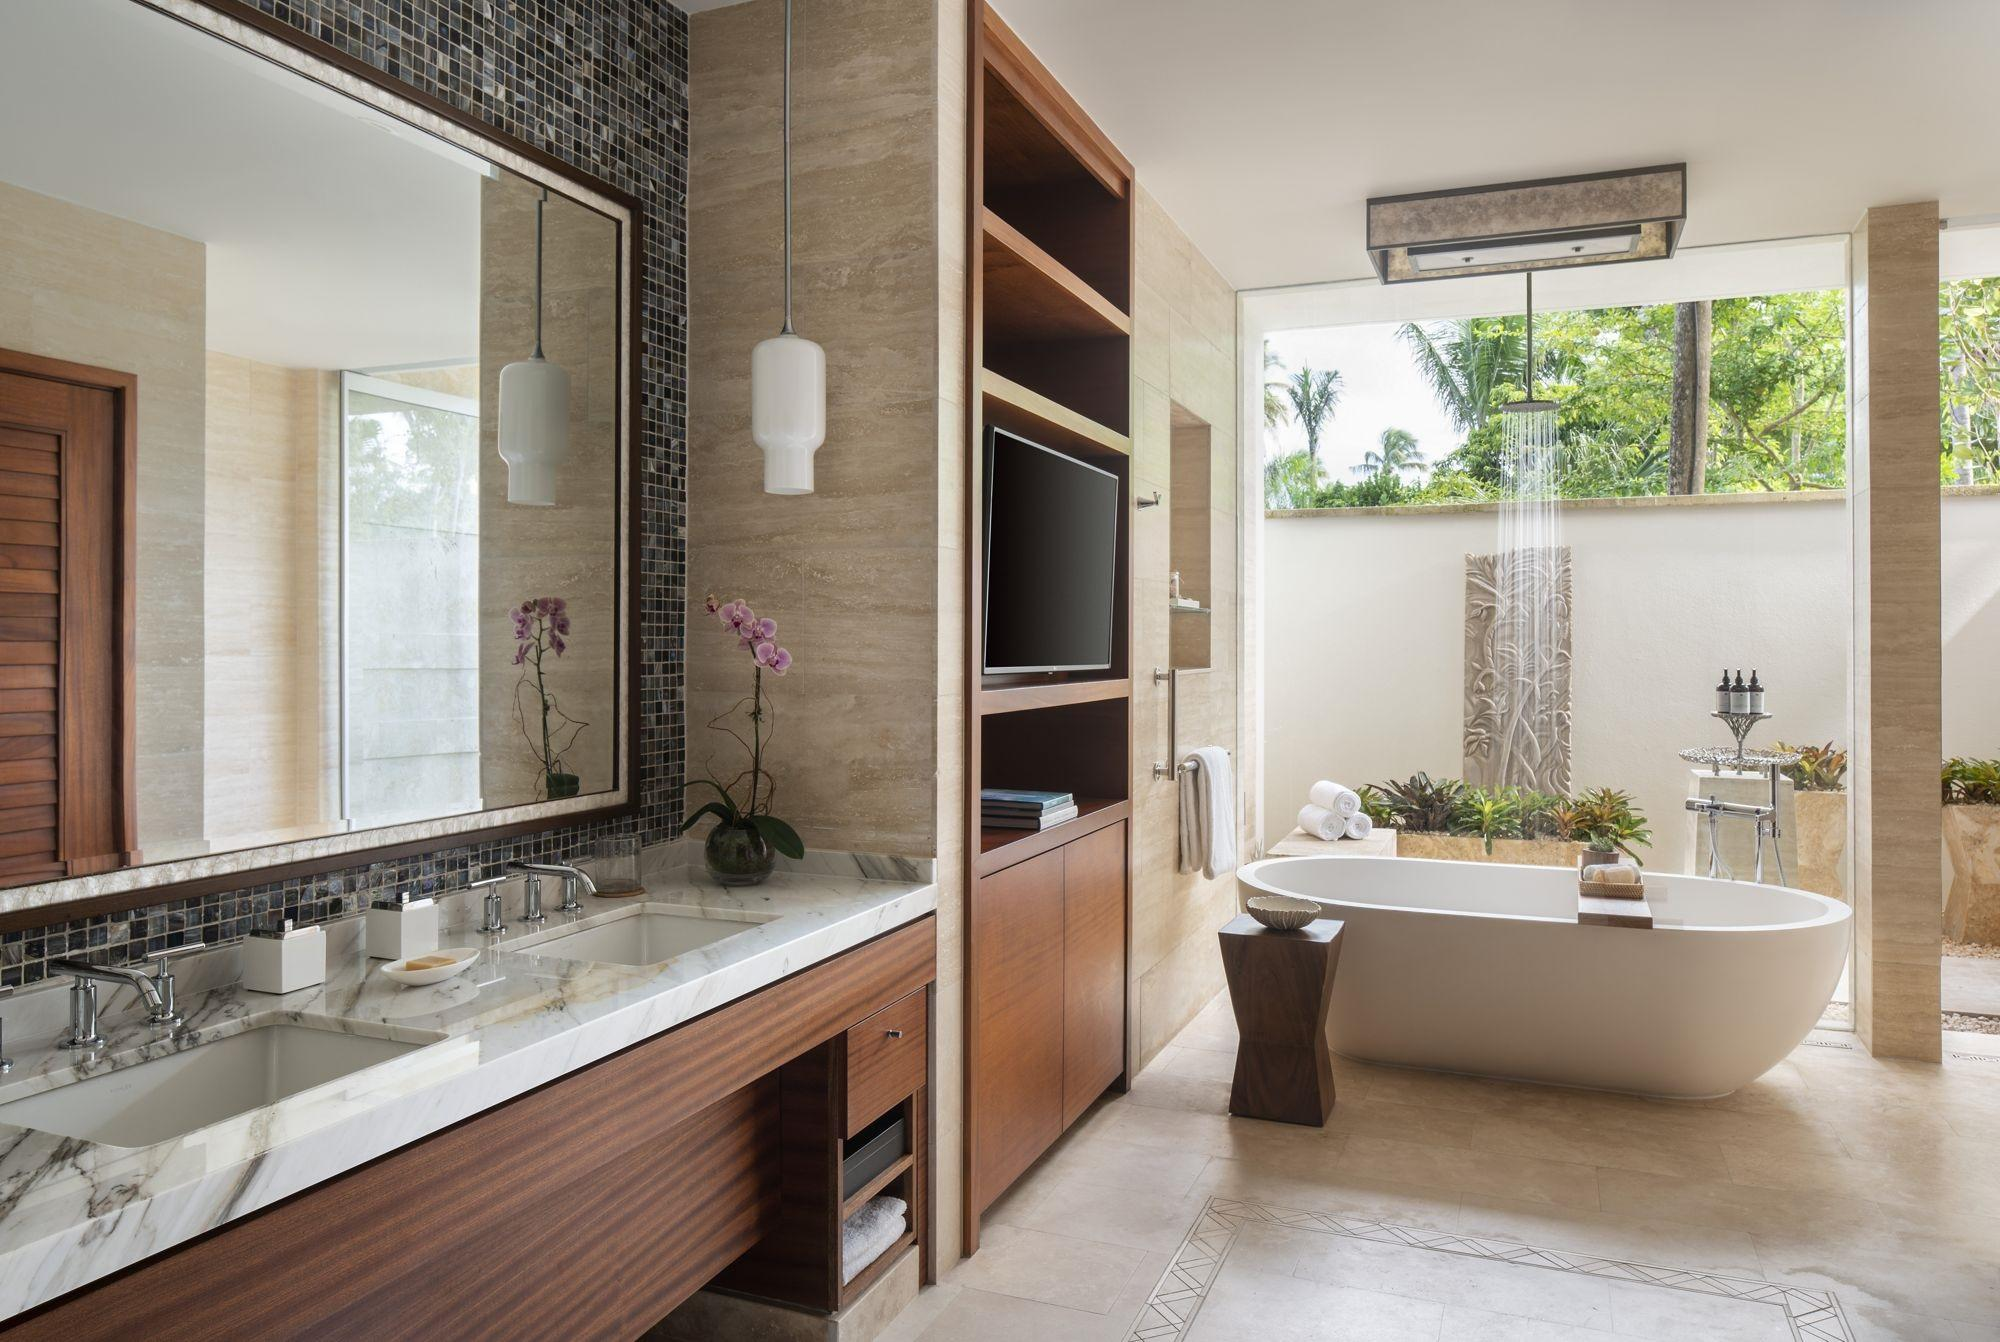 One Bedroom Bathroom with indoor and outdoor shower